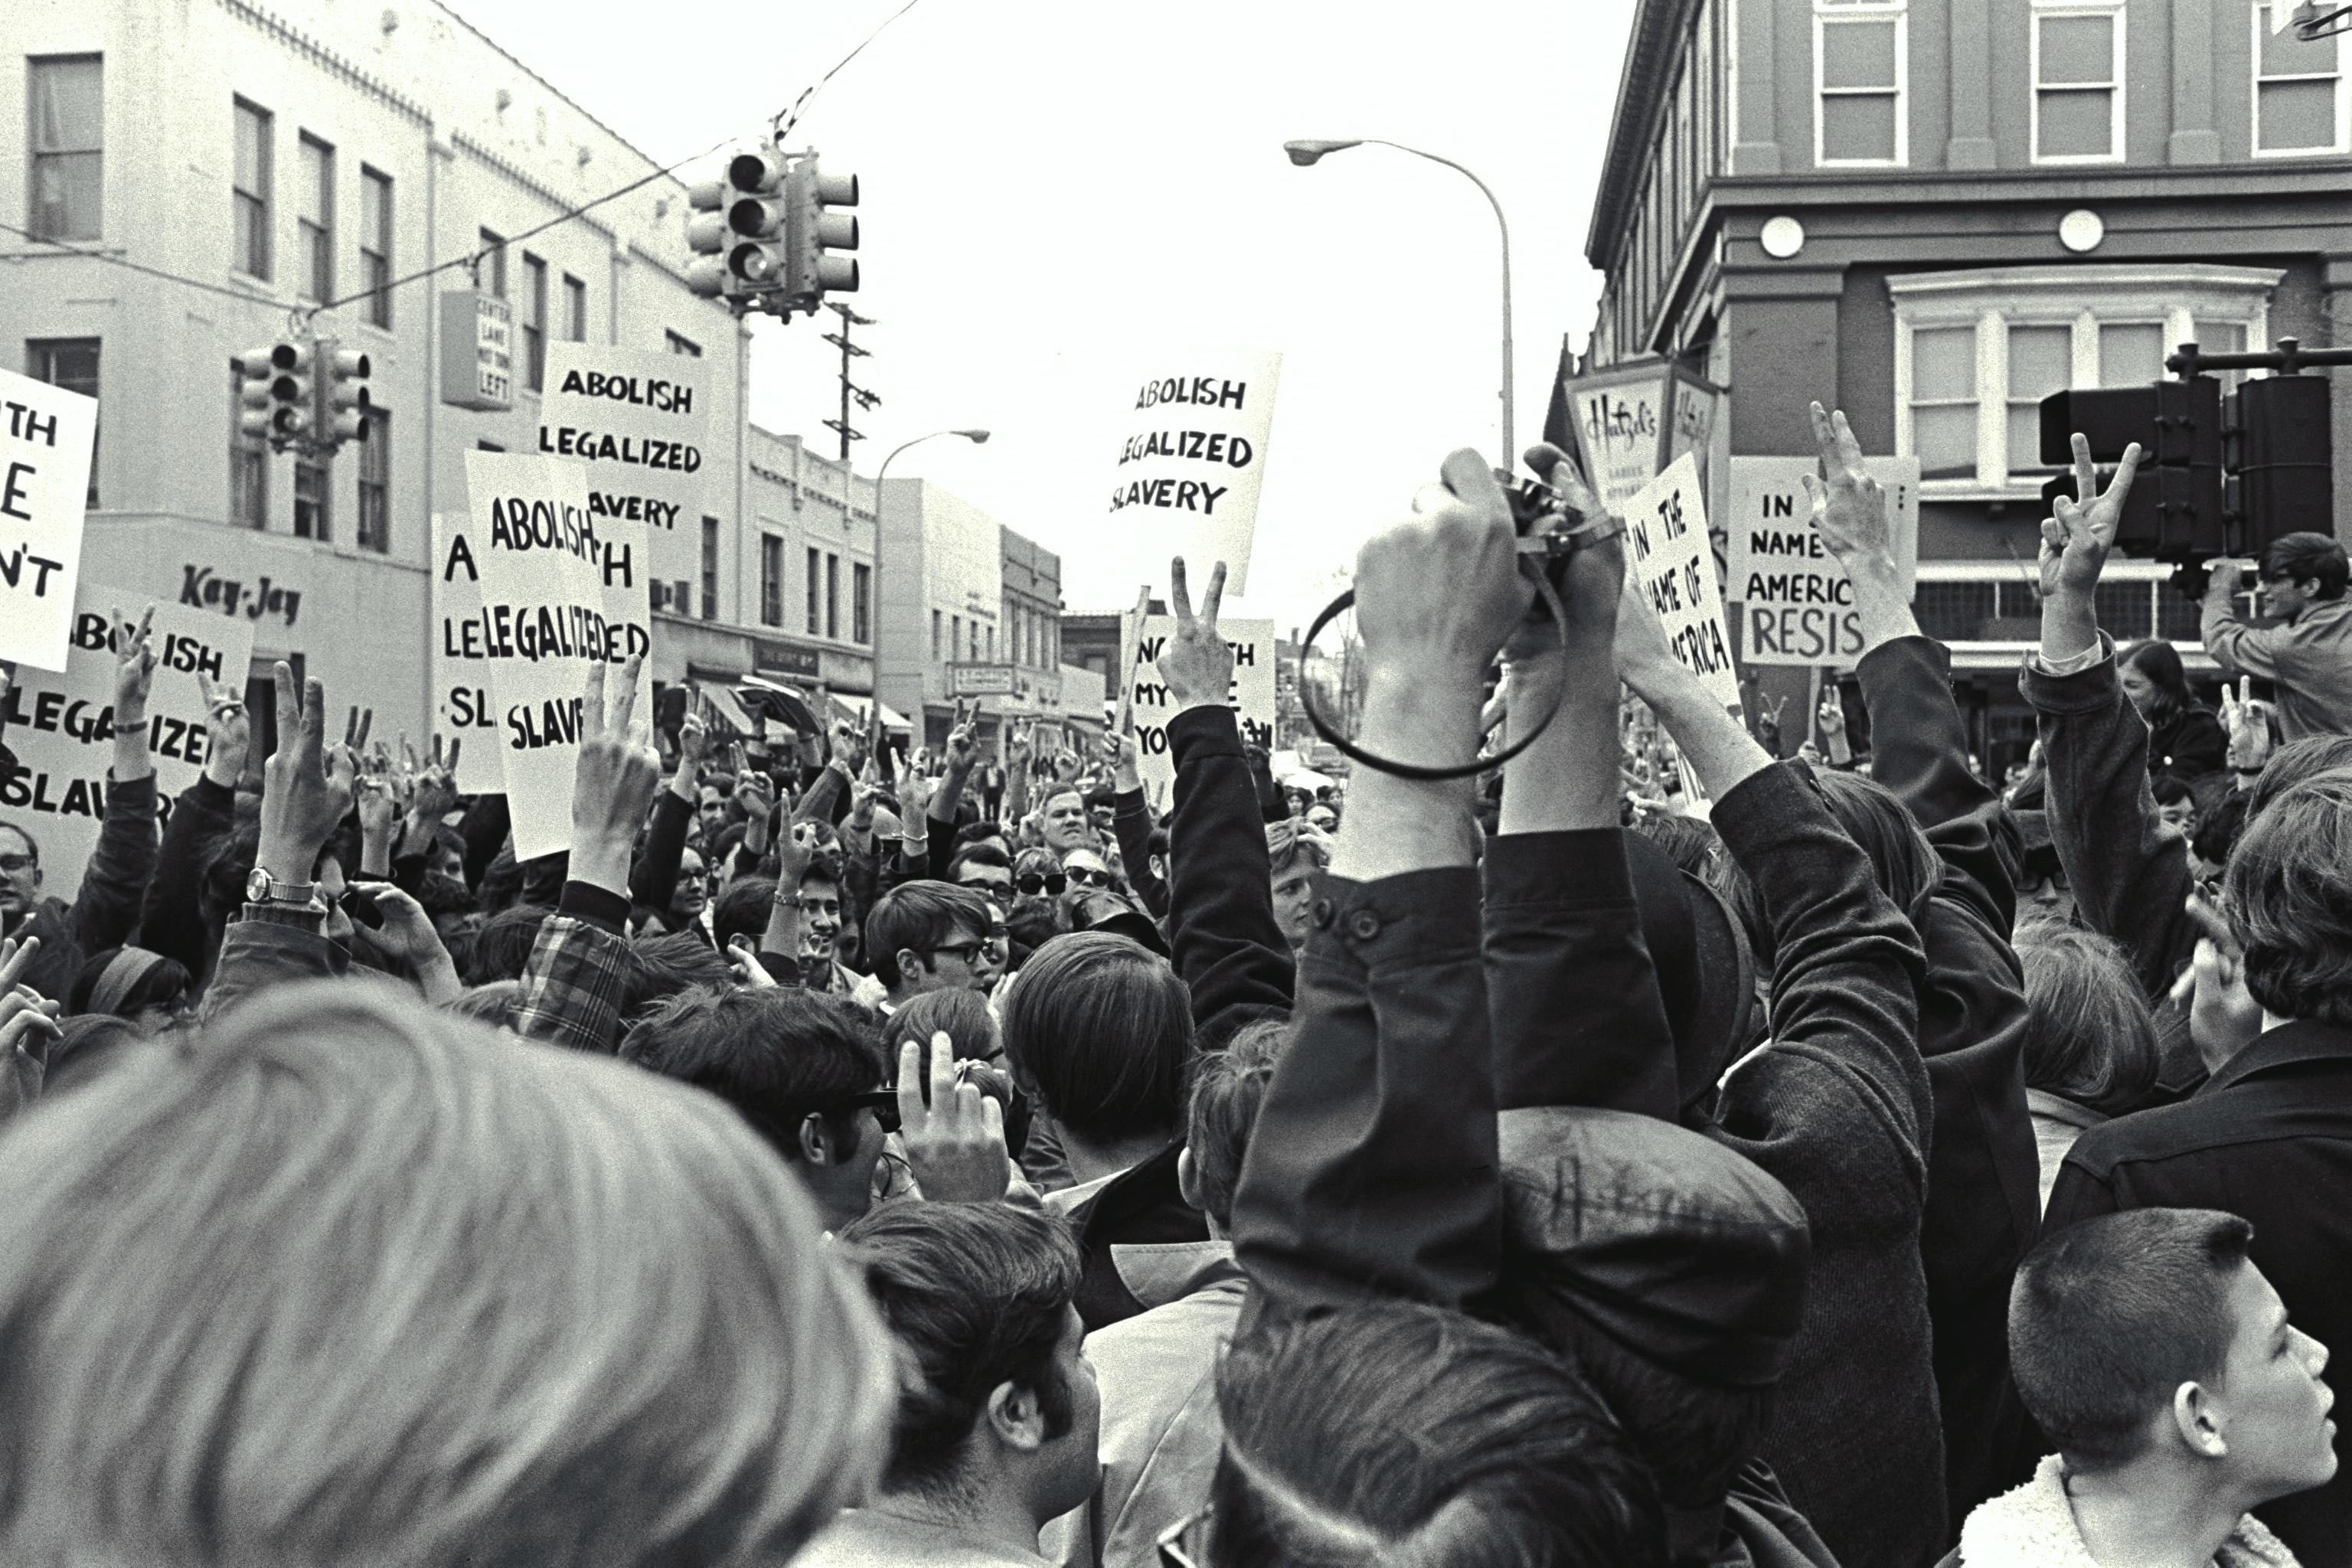 State Stree protest 1960s